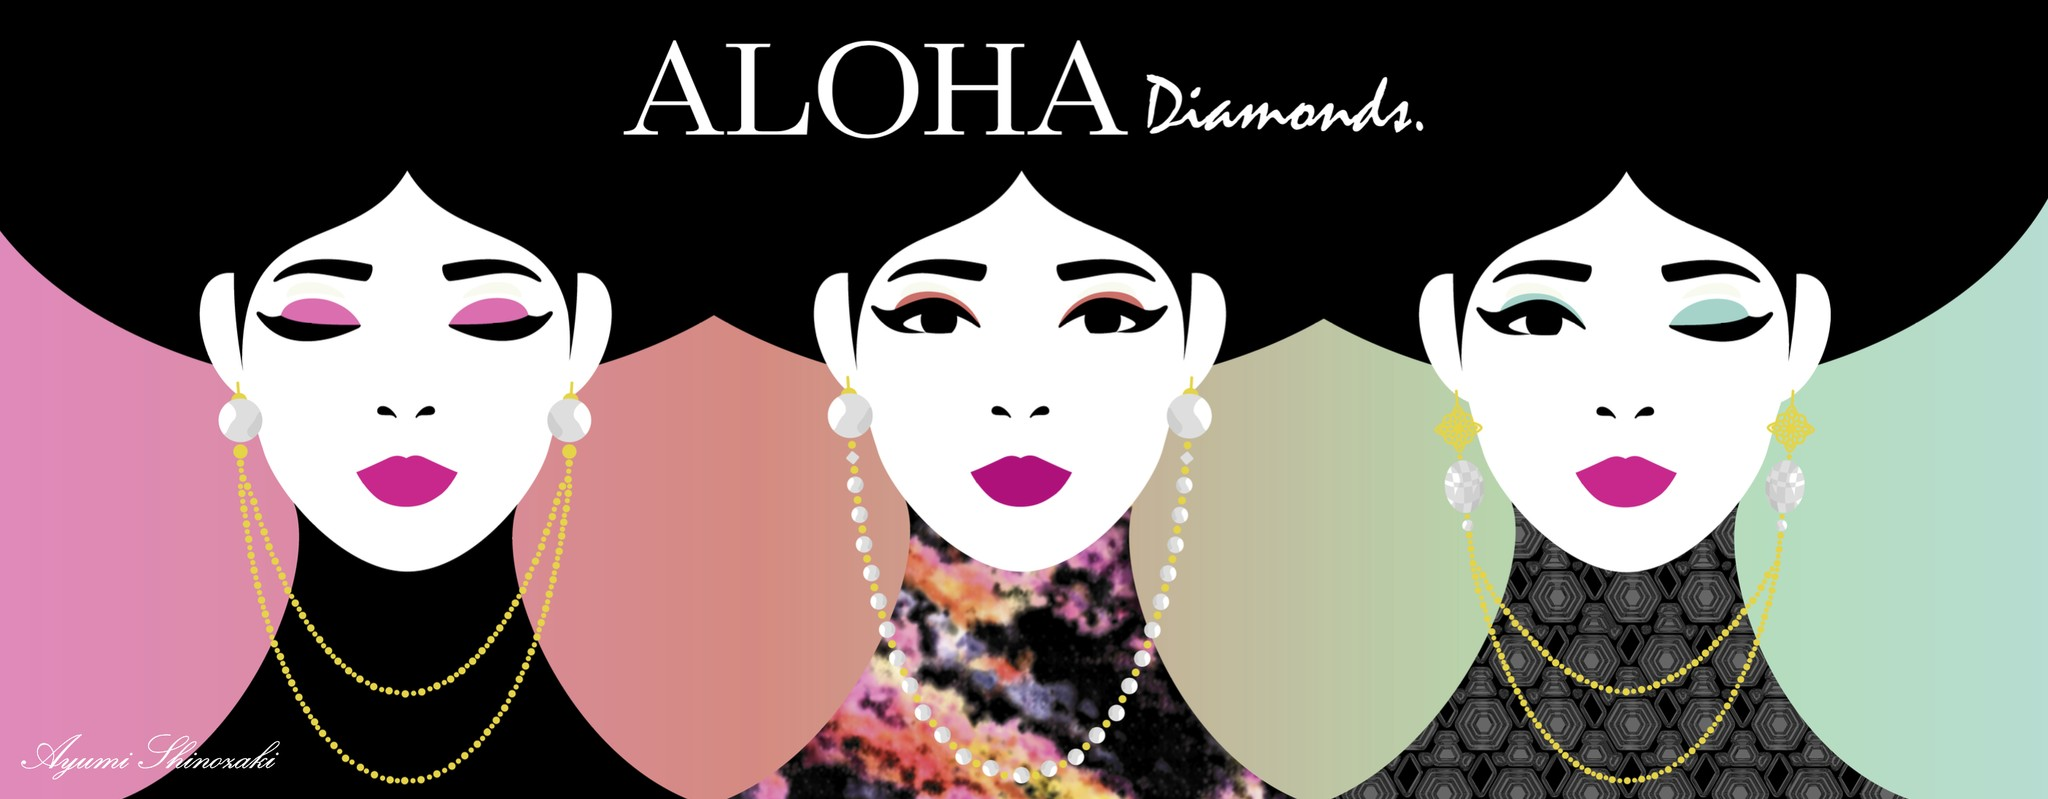 ALOHA Diamonds.